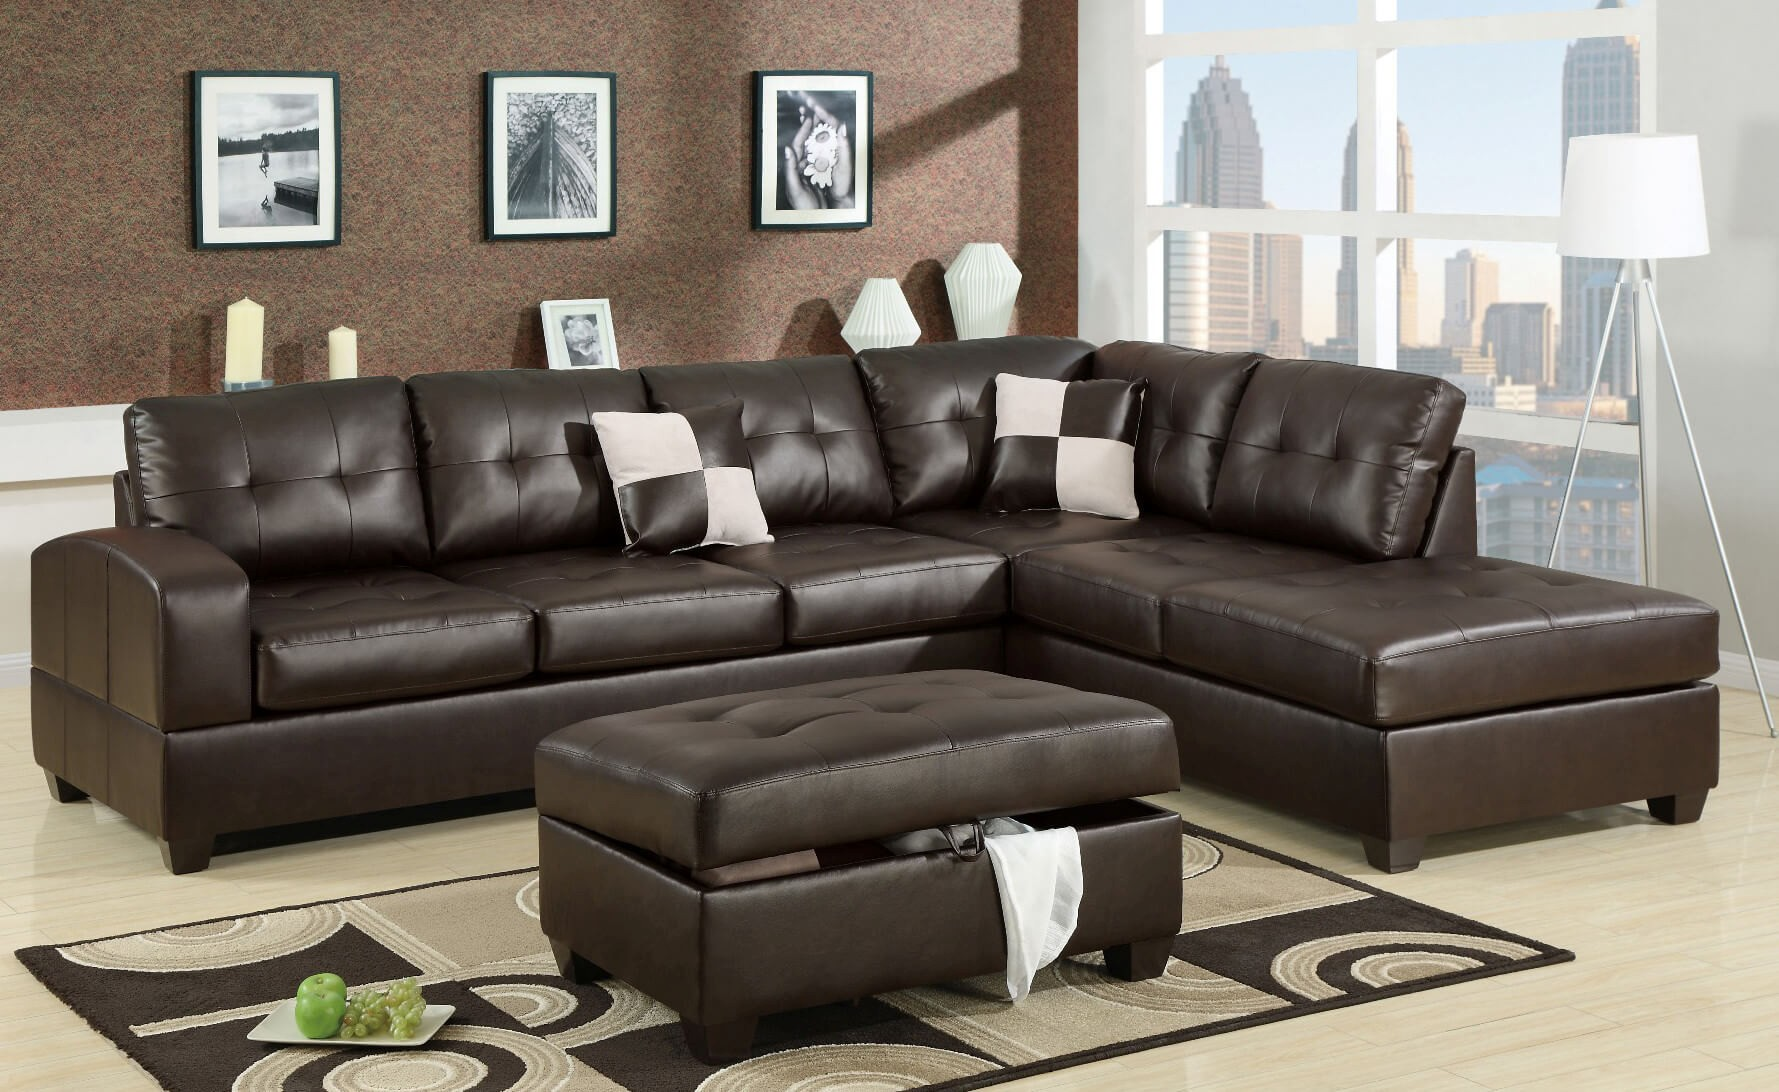 Sectional sofas Under $500 Beautiful Sectional sofas Under Hotelsbacau Collection